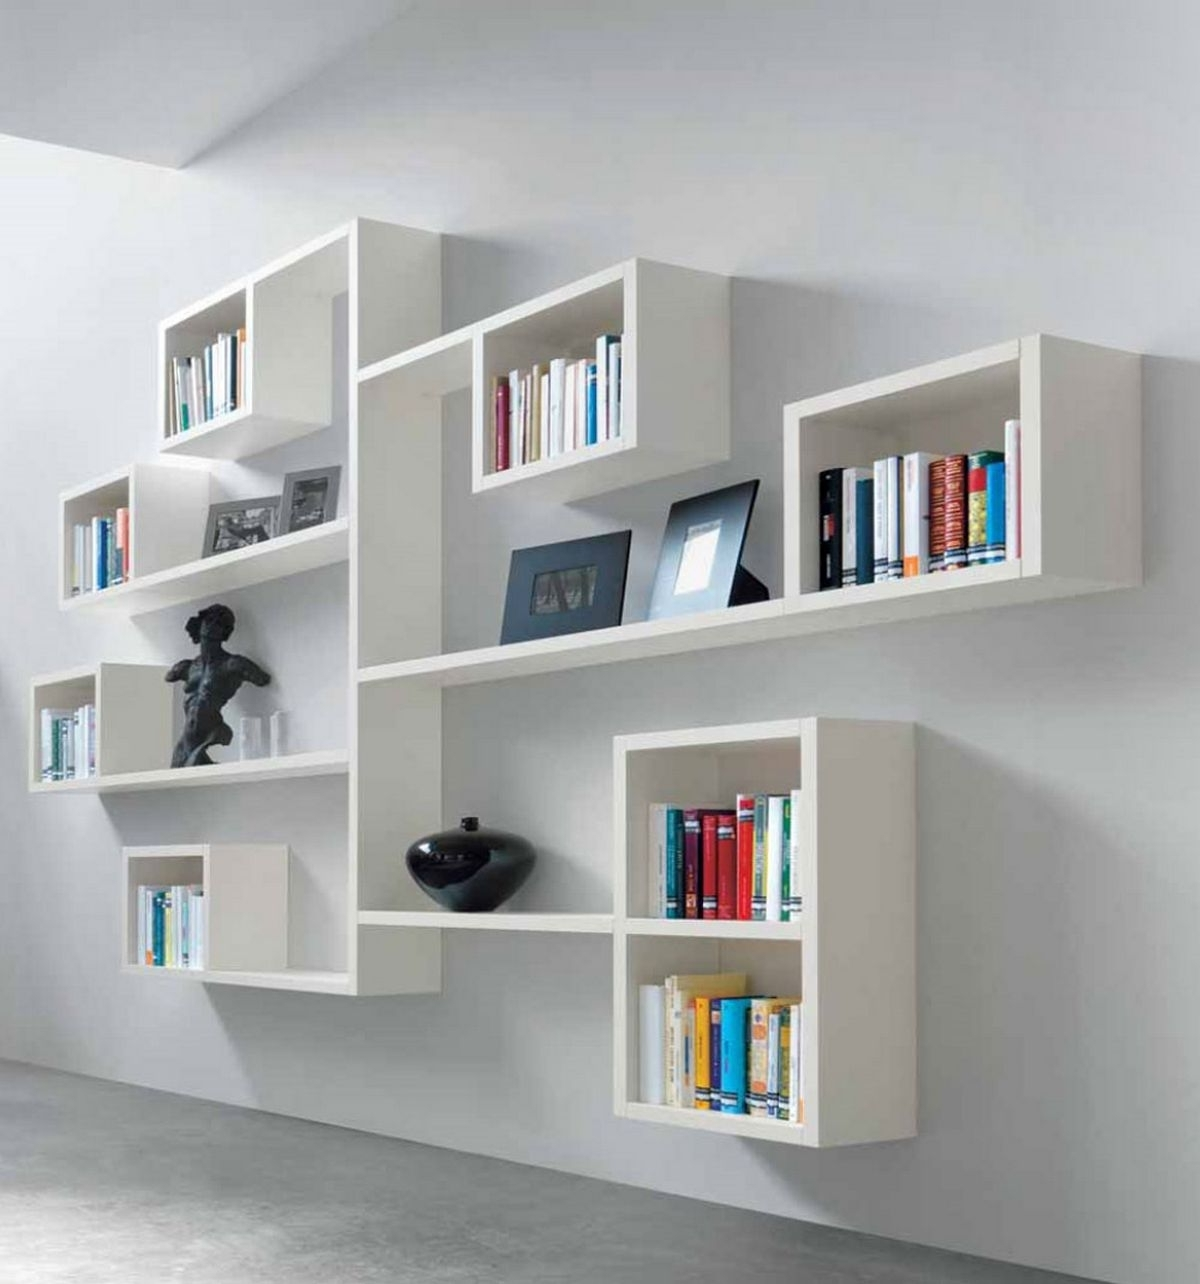 Decoration : Wall Mounted Book Shelf Wall Mounted Shelving Systems Throughout 2017 Book Shelving Systems (View 8 of 15)